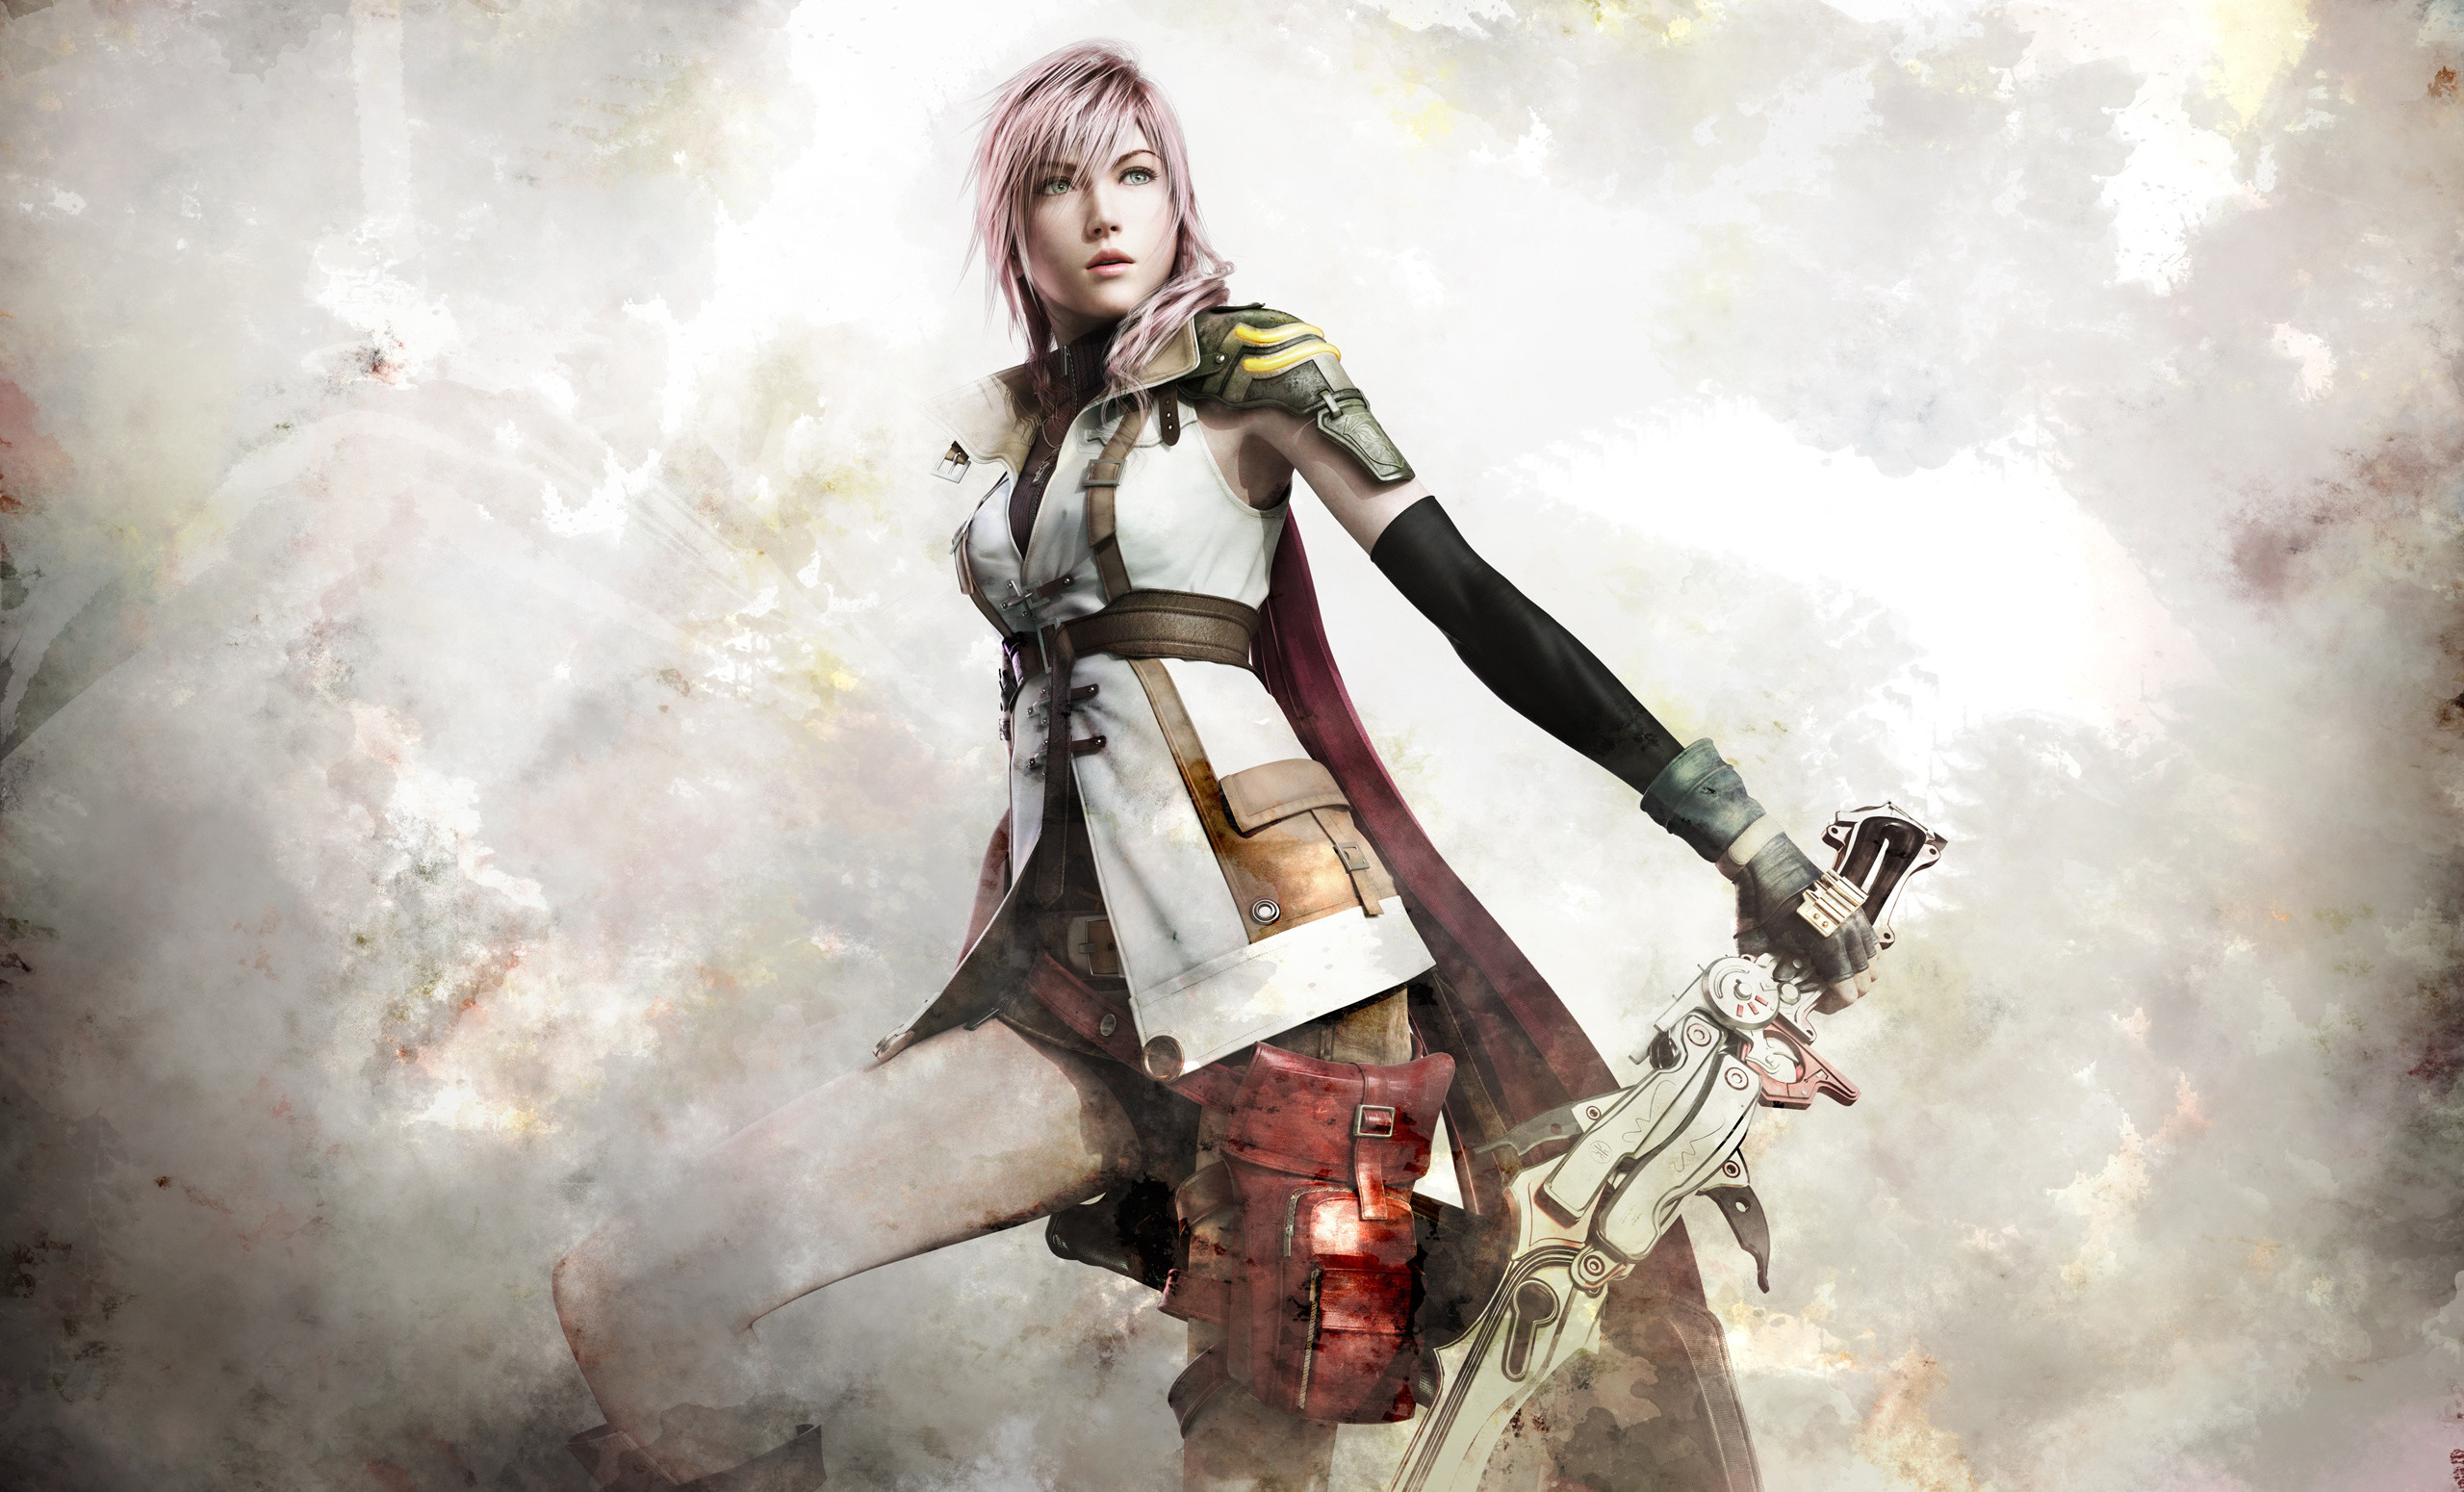 wallpaper.wiki-Free-Images-Final-Fantasy-HD-Wallpapers-